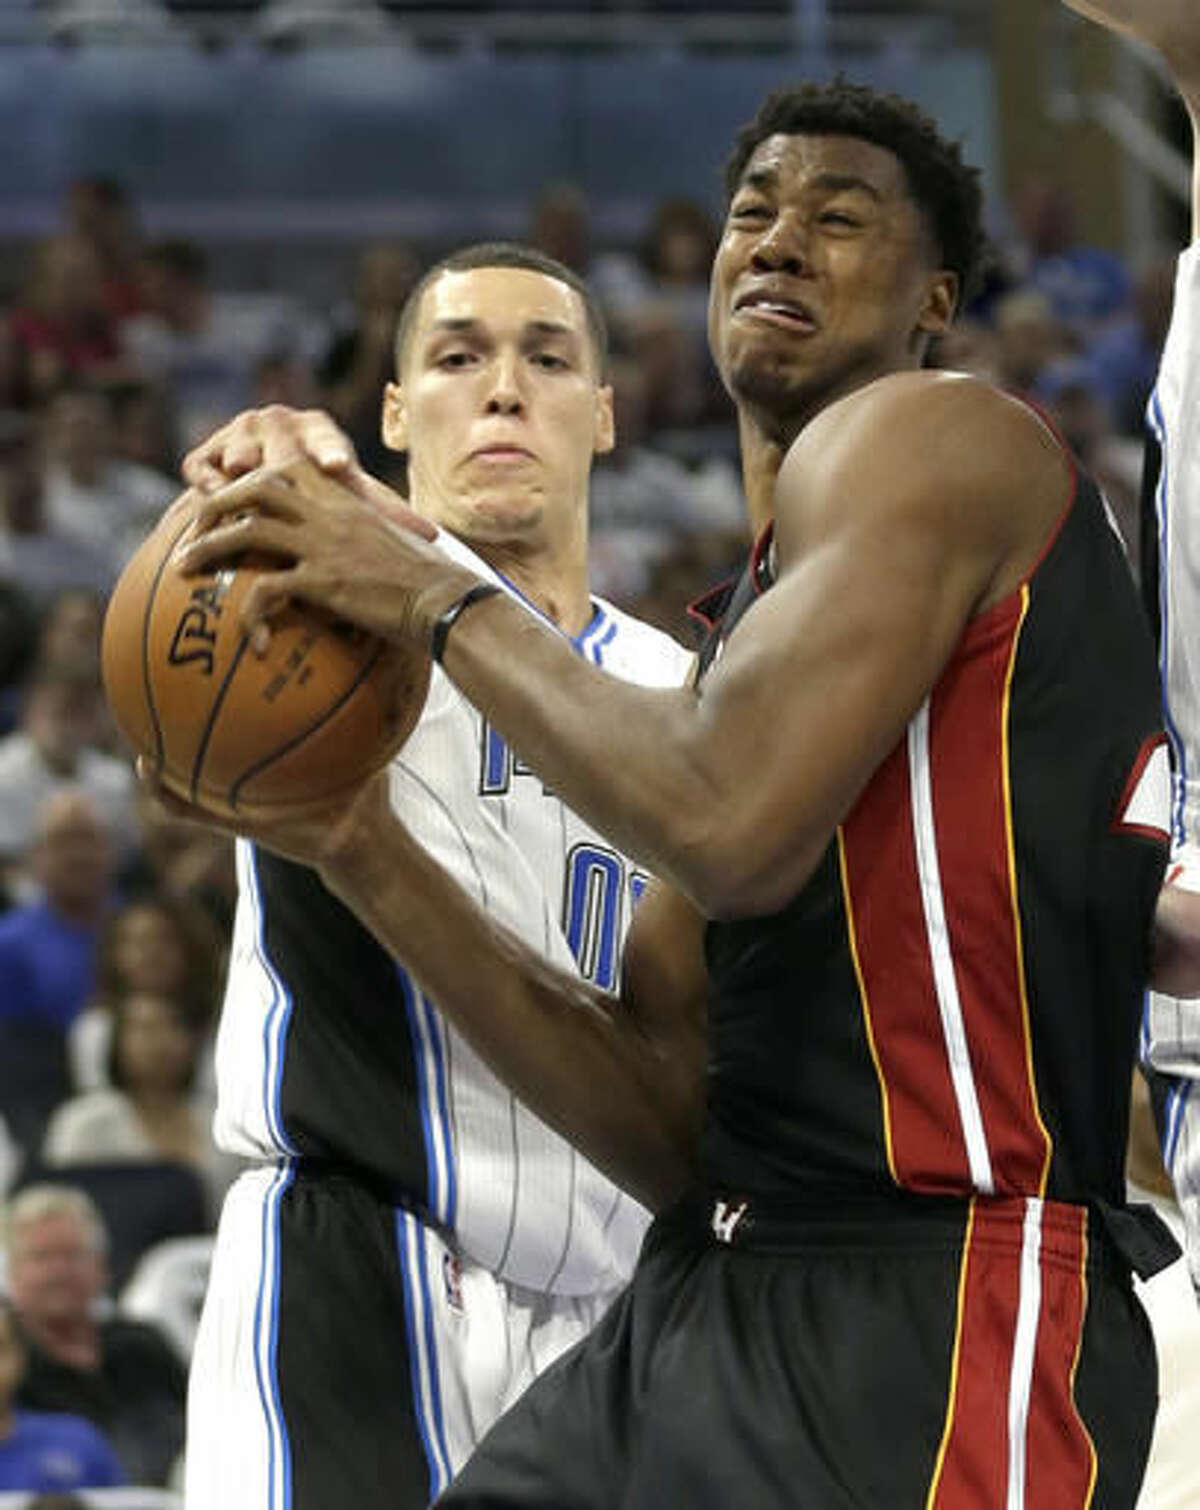 Miami Heat's Hassan Whiteside, right, struggles to get off a shot as Orlando Magic's Aaron Gordon, left, gets his hand on the ball during the first half of an NBA basketball game, Wednesday, Oct. 26, 2016, in Orlando, Fla. (AP Photo/John Raoux)